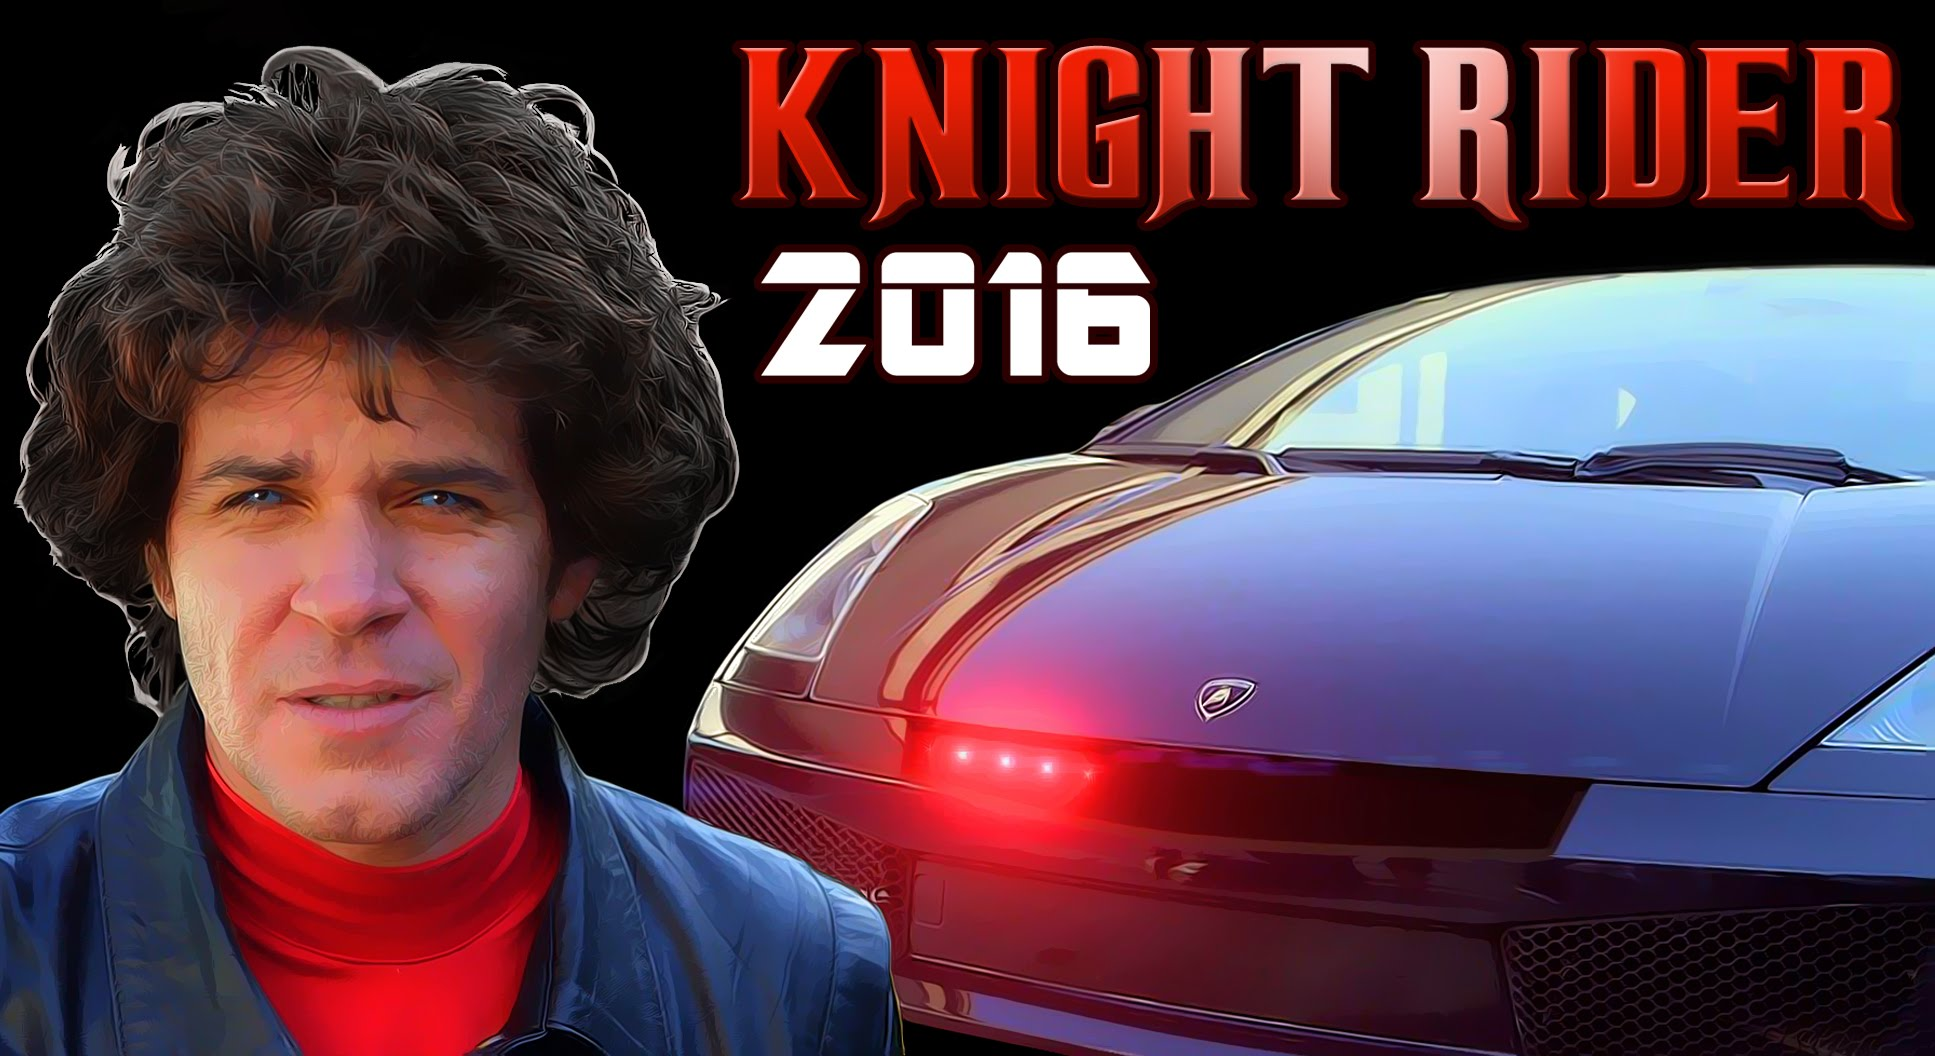 Boondock Girl Wallpaper Knight Rider Parody Where Michael Knight Is Stuck In The